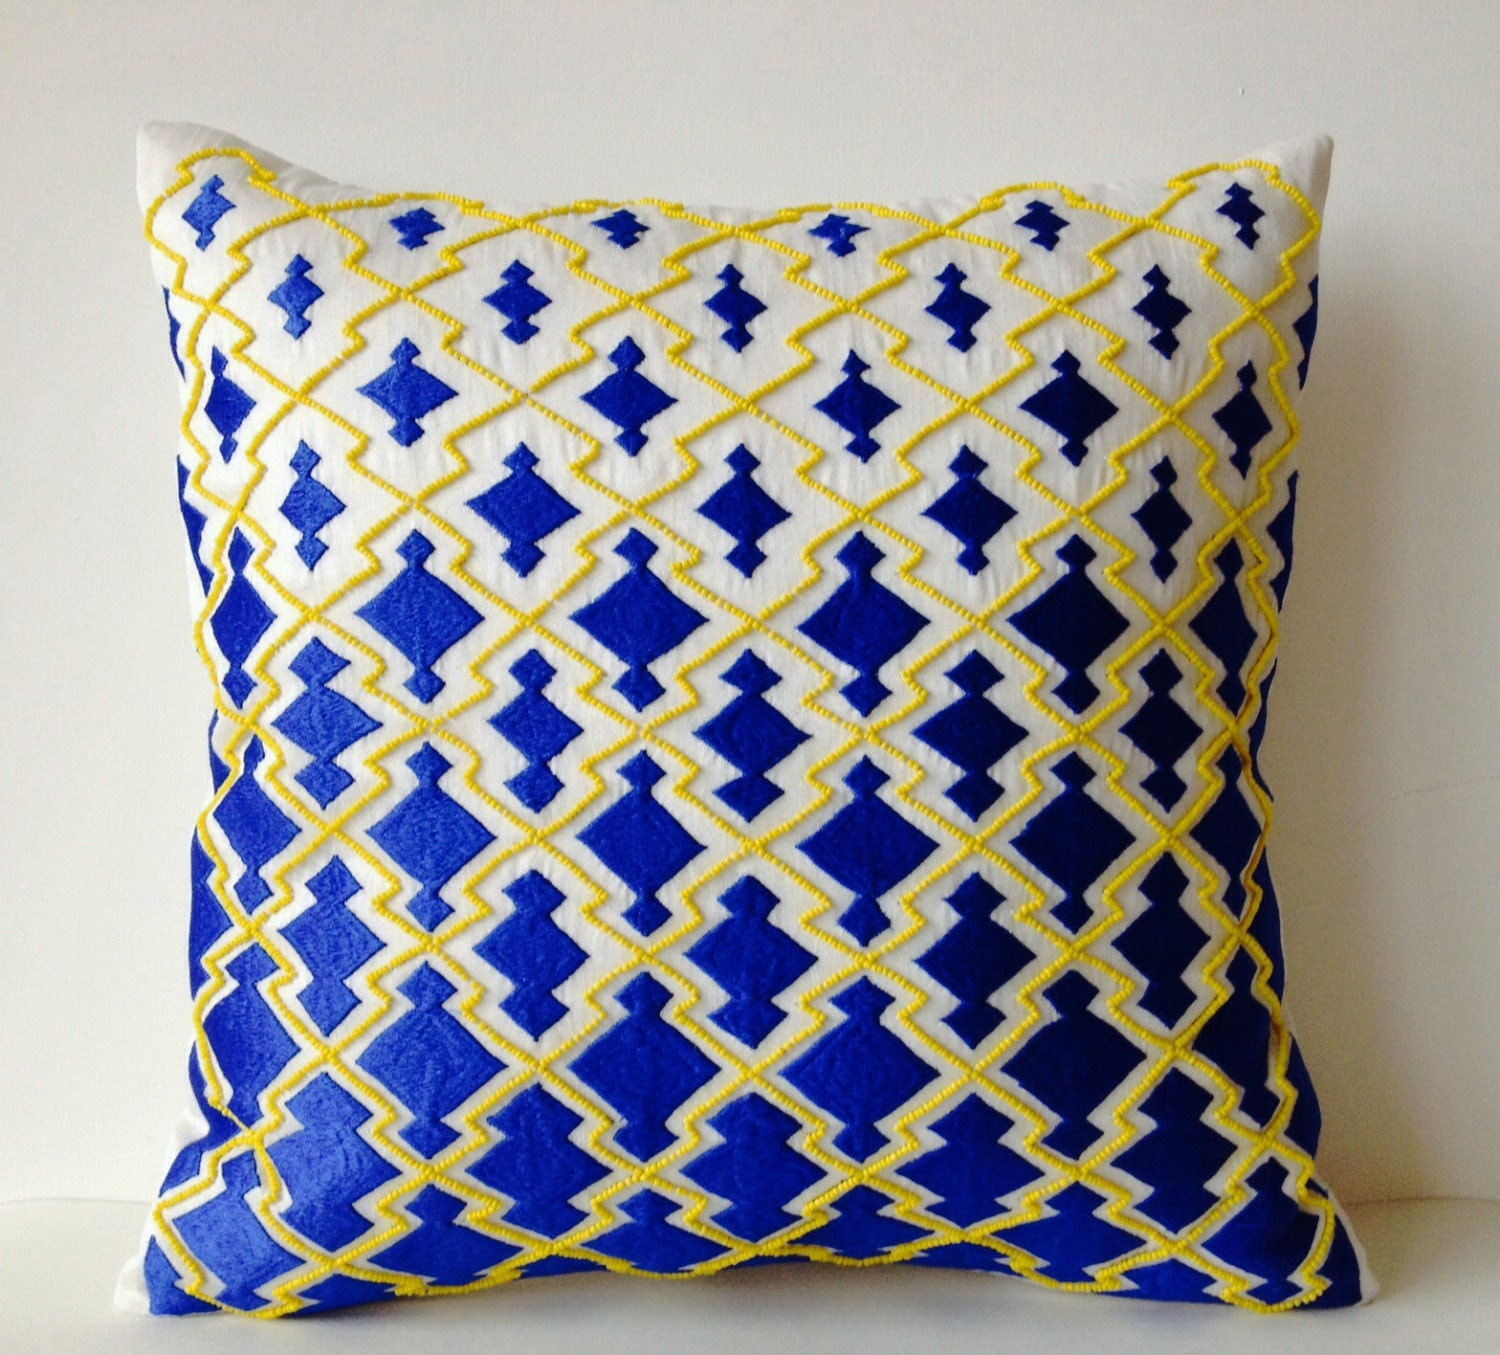 Throw Pillows Royal Blue : Throw Pillows Royal Blue Decorative Pillowcase in by AmoreBeaute